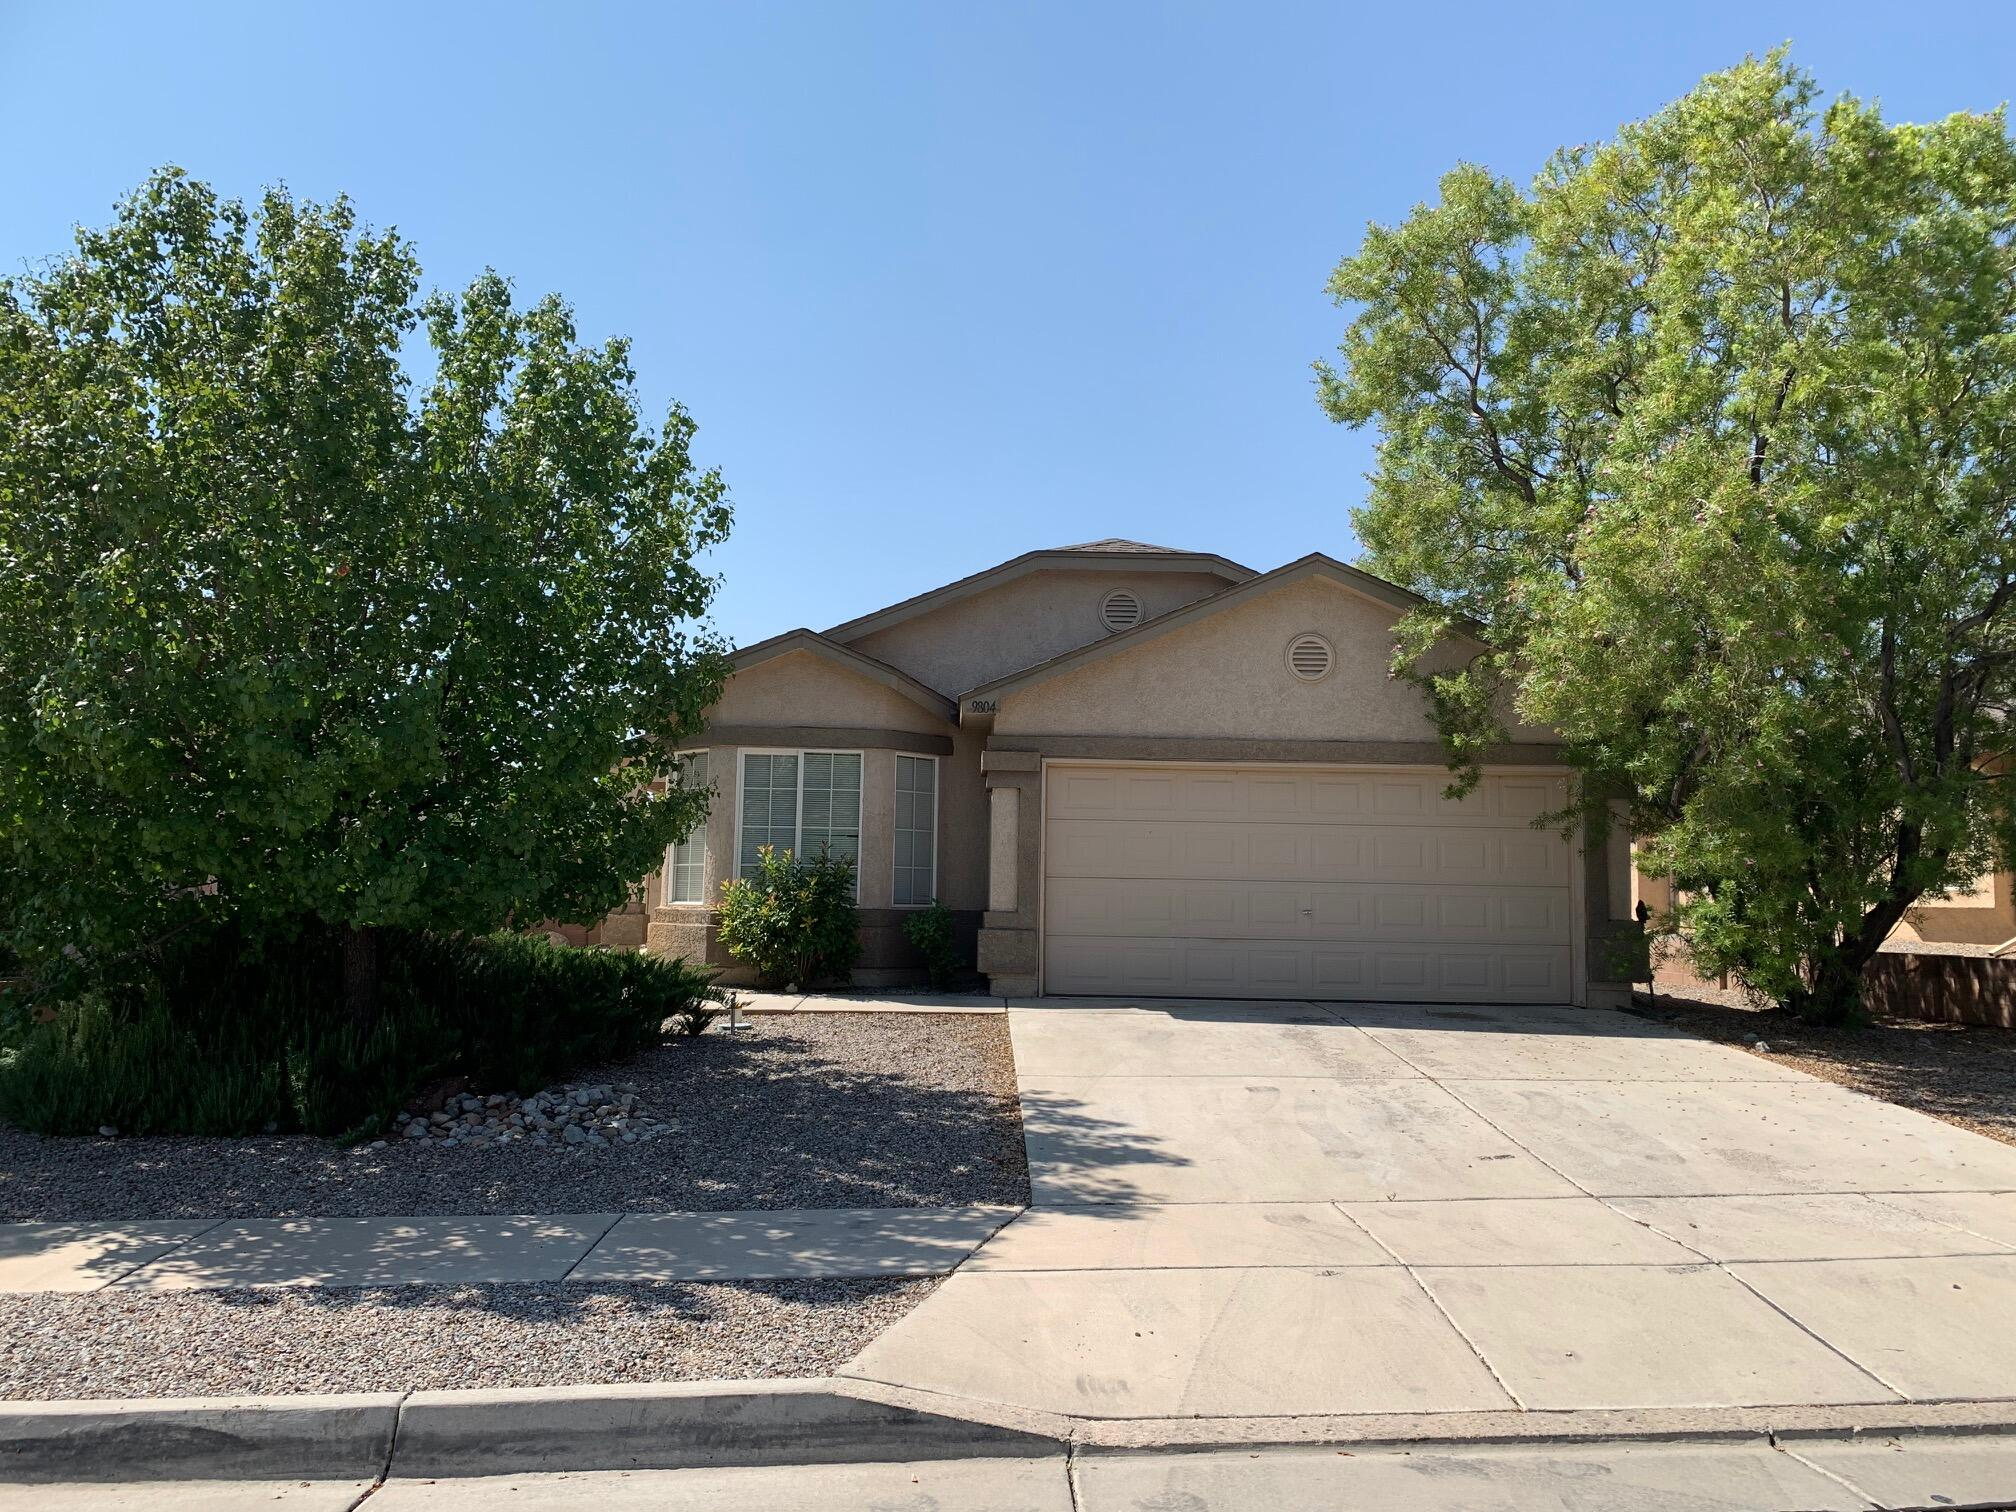 Popular DR Horton floorplan with master separation.  3/br plus office (or the 4th bedroom option from builder), 2 full baths.  Refrigerated air.  Gated community, landscaped F&B.